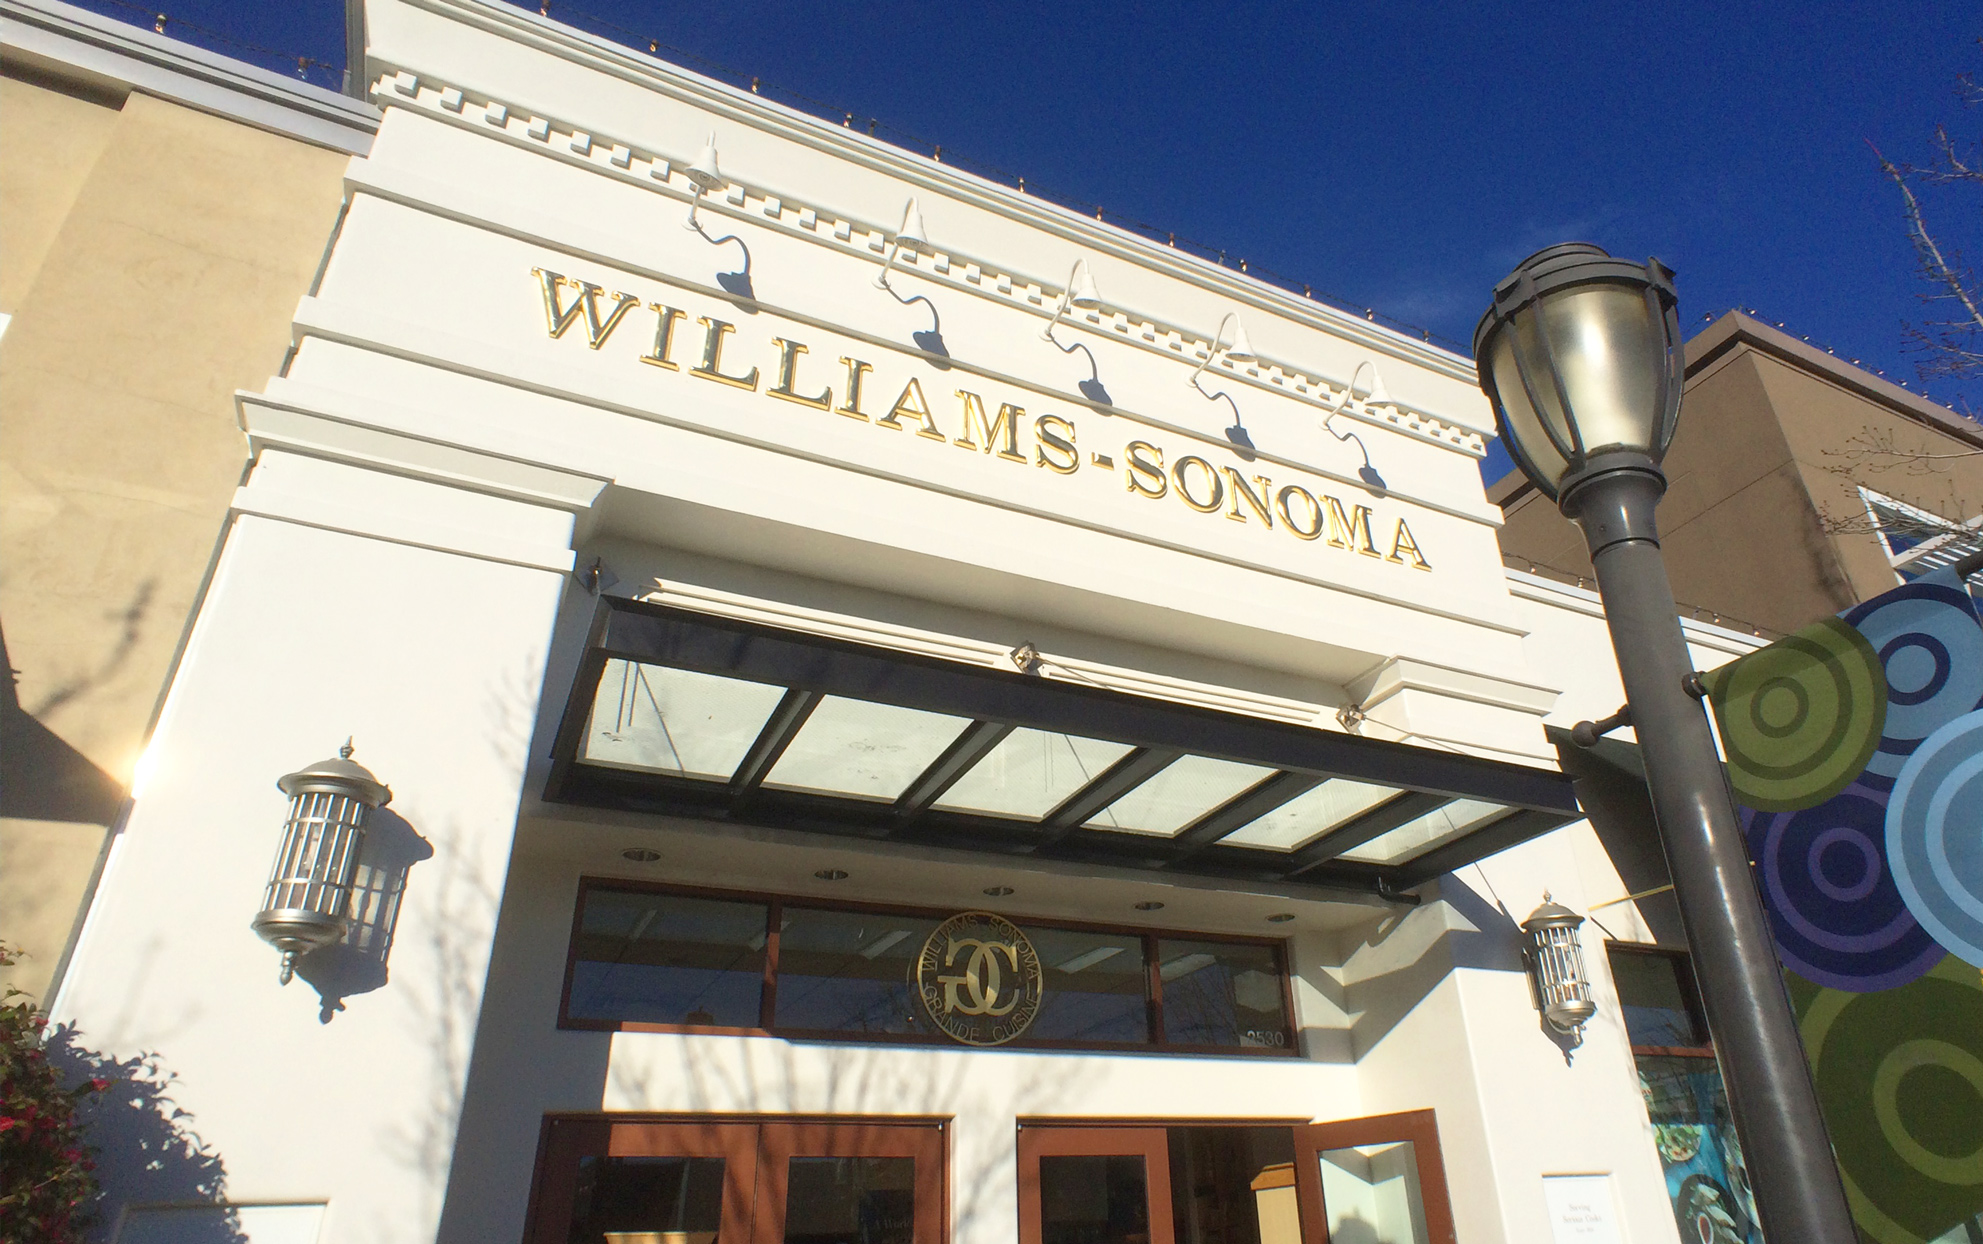 Williams-Sonoma Is Hiring Thousands of Remote Workers for the Holidays